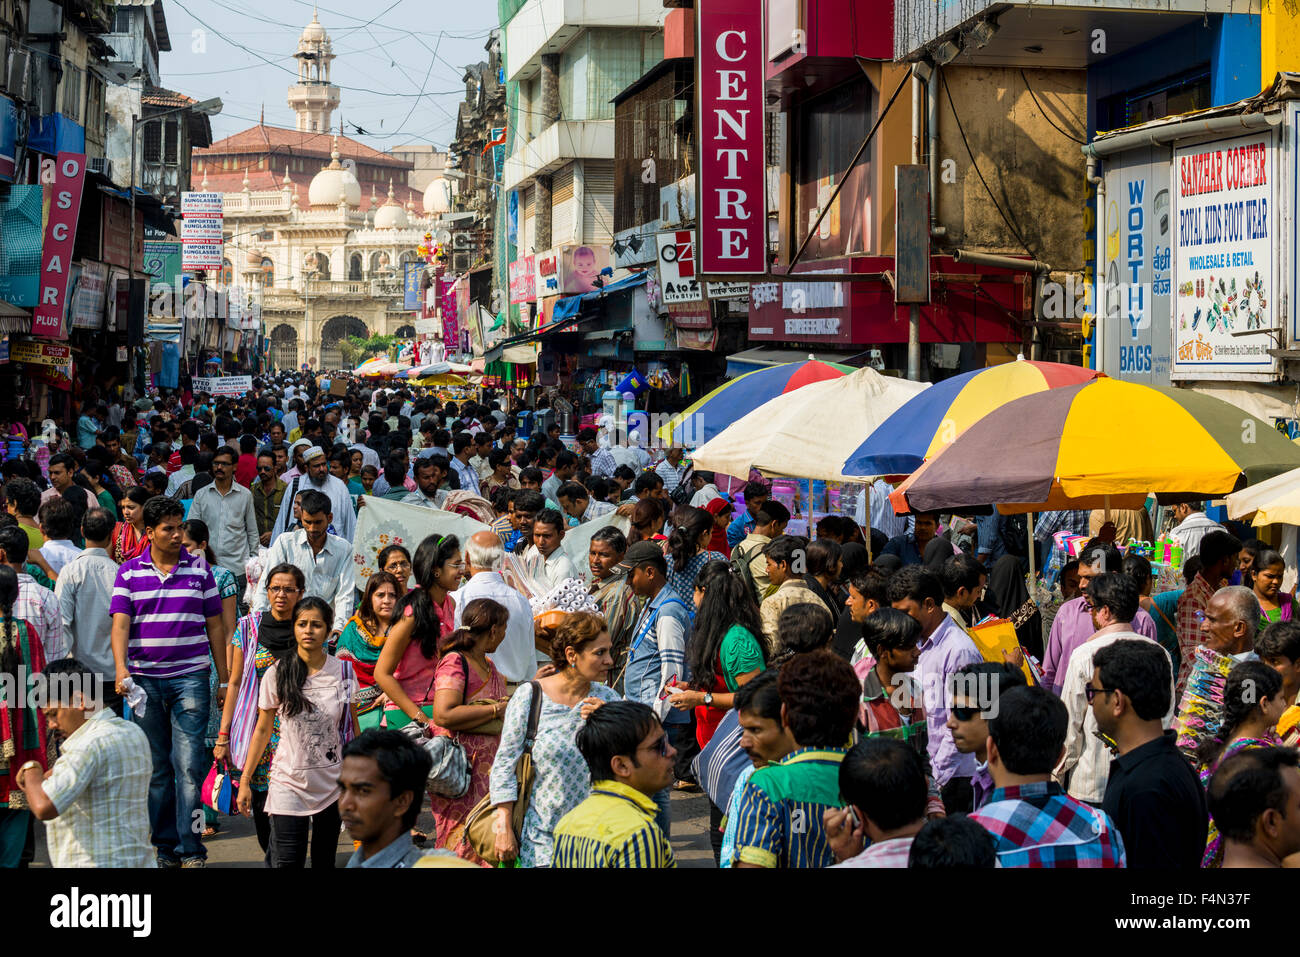 many people in a crowded street with shops at mangaldas market stock photo 88974019 alamy. Black Bedroom Furniture Sets. Home Design Ideas